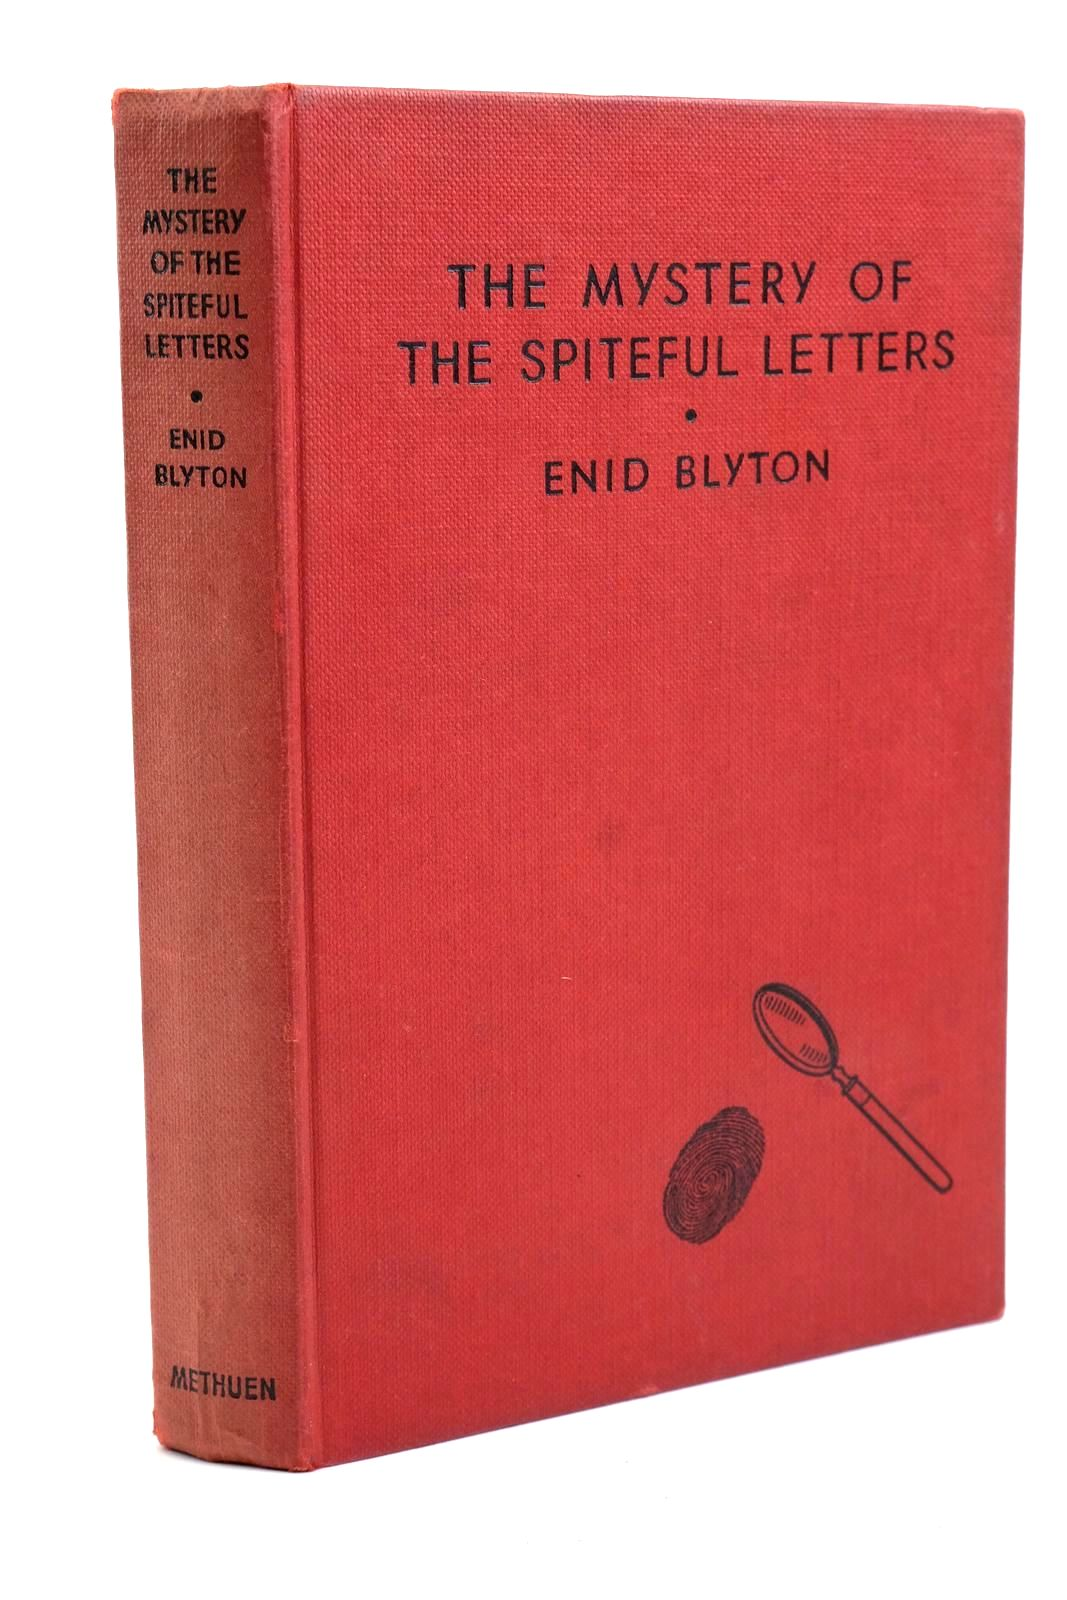 Photo of THE MYSTERY OF THE SPITEFUL LETTERS written by Blyton, Enid illustrated by Abbey, J. published by Methuen & Co. Ltd. (STOCK CODE: 1320749)  for sale by Stella & Rose's Books